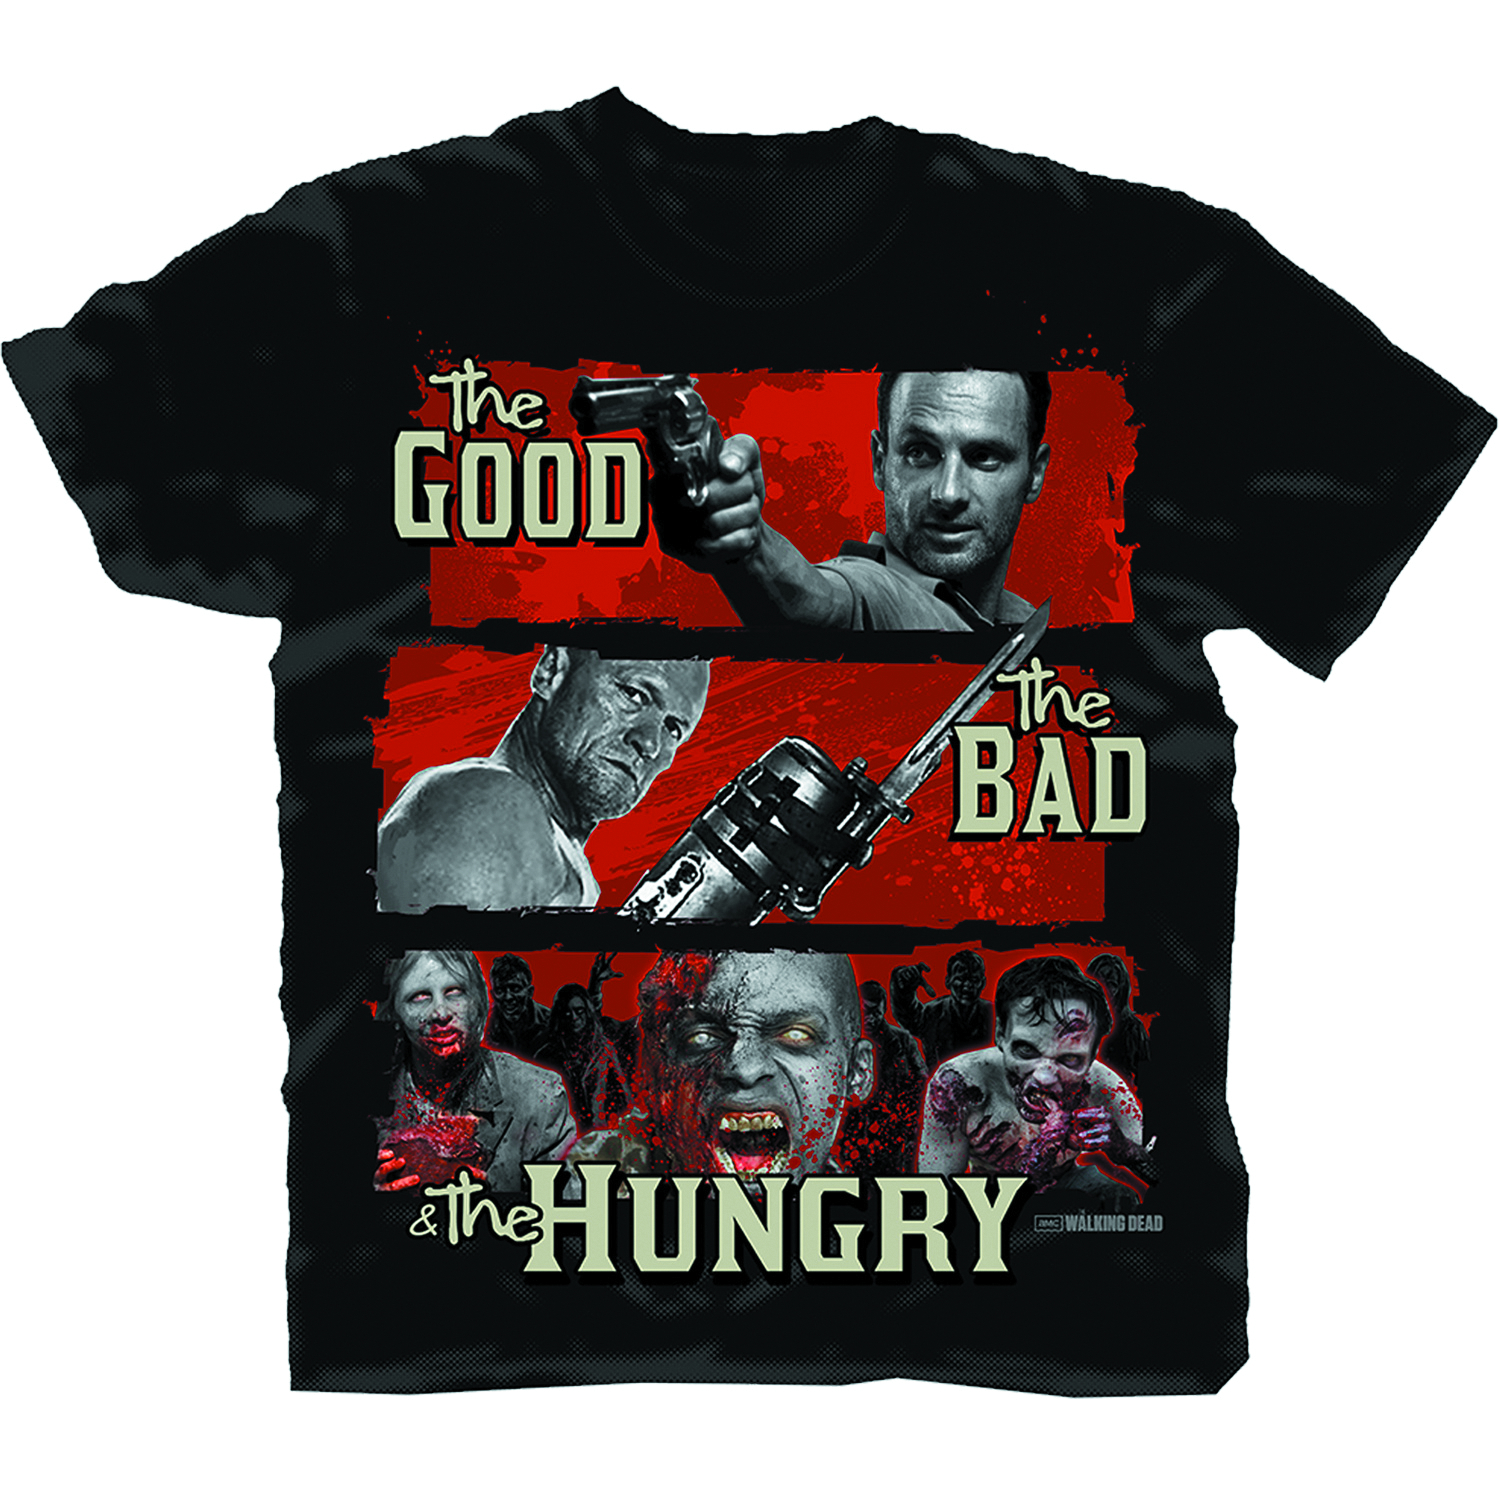 WALKING DEAD GOOD BAD HUNGRY PX BLK T/S XL